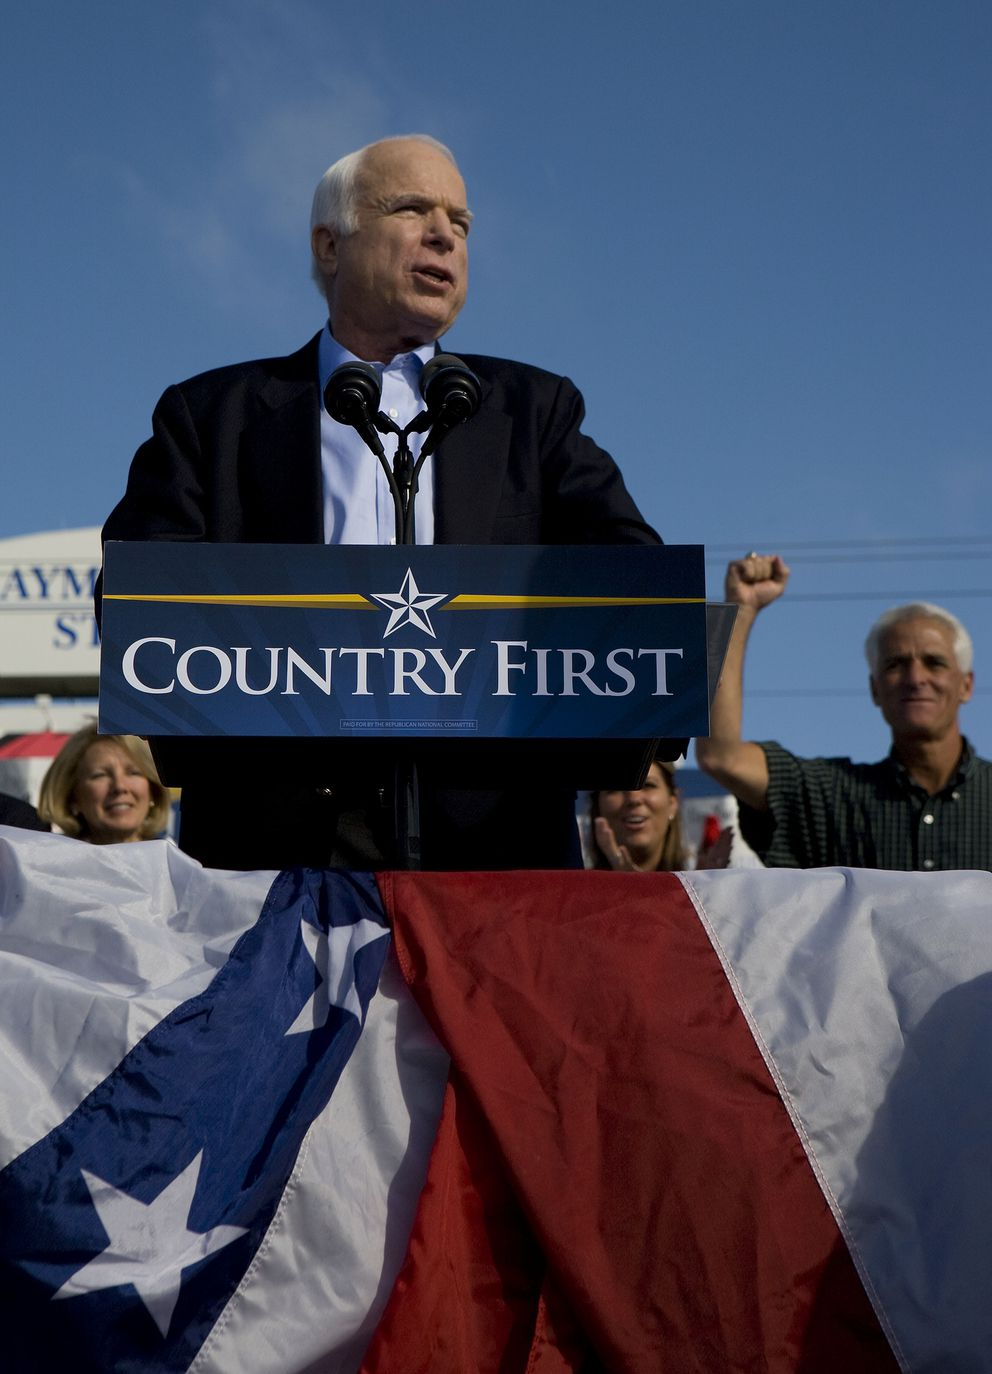 Sen. John McCain speaks at a campaign rally in Tampa, Fla., Nov. 3, 2008. (Stephen Crowley/The New York Times file)